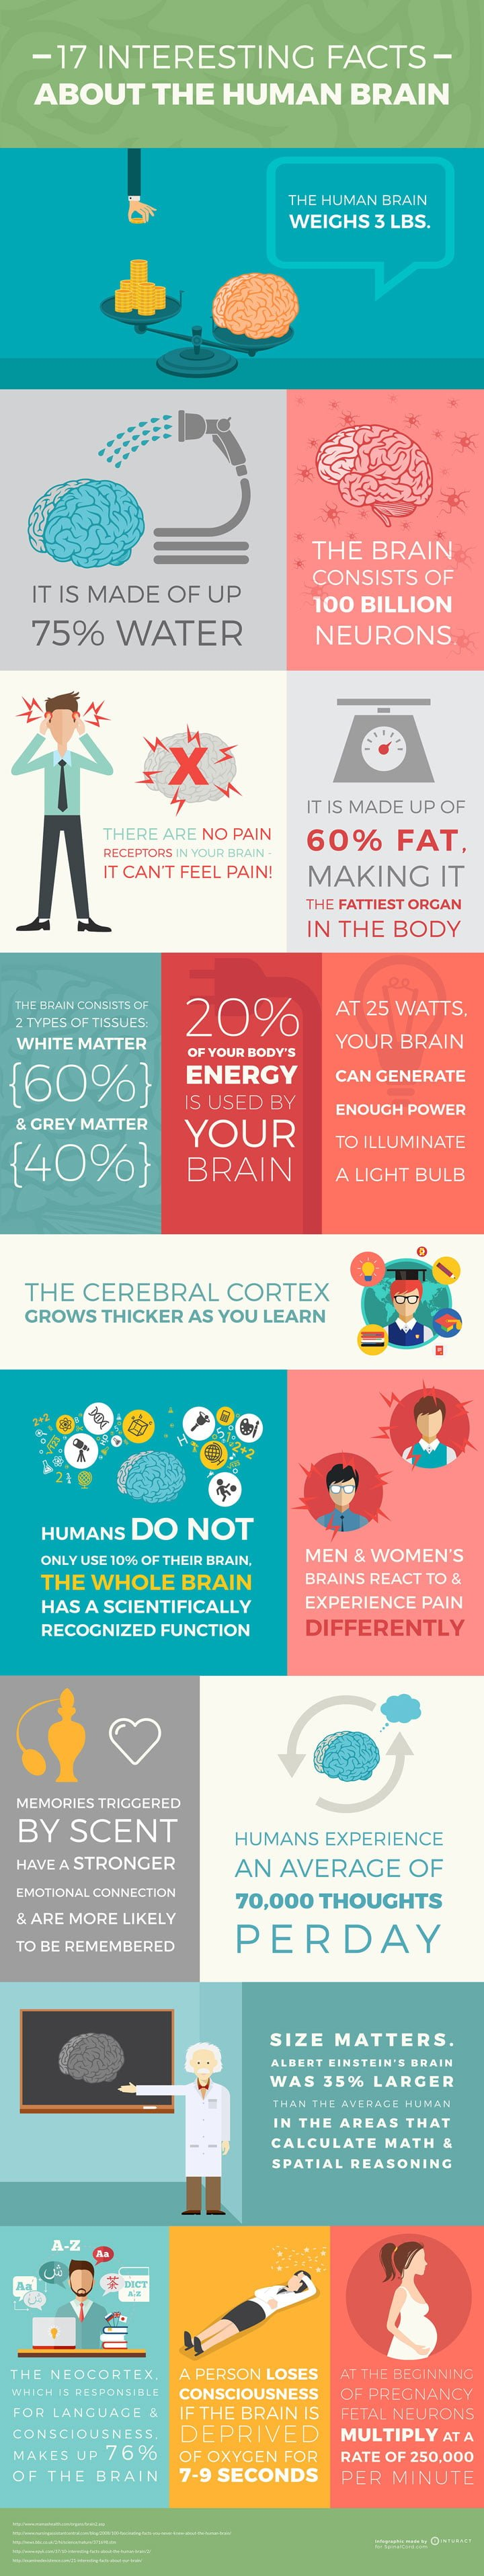 17 Interesting Facts About The Human Brain Infographic